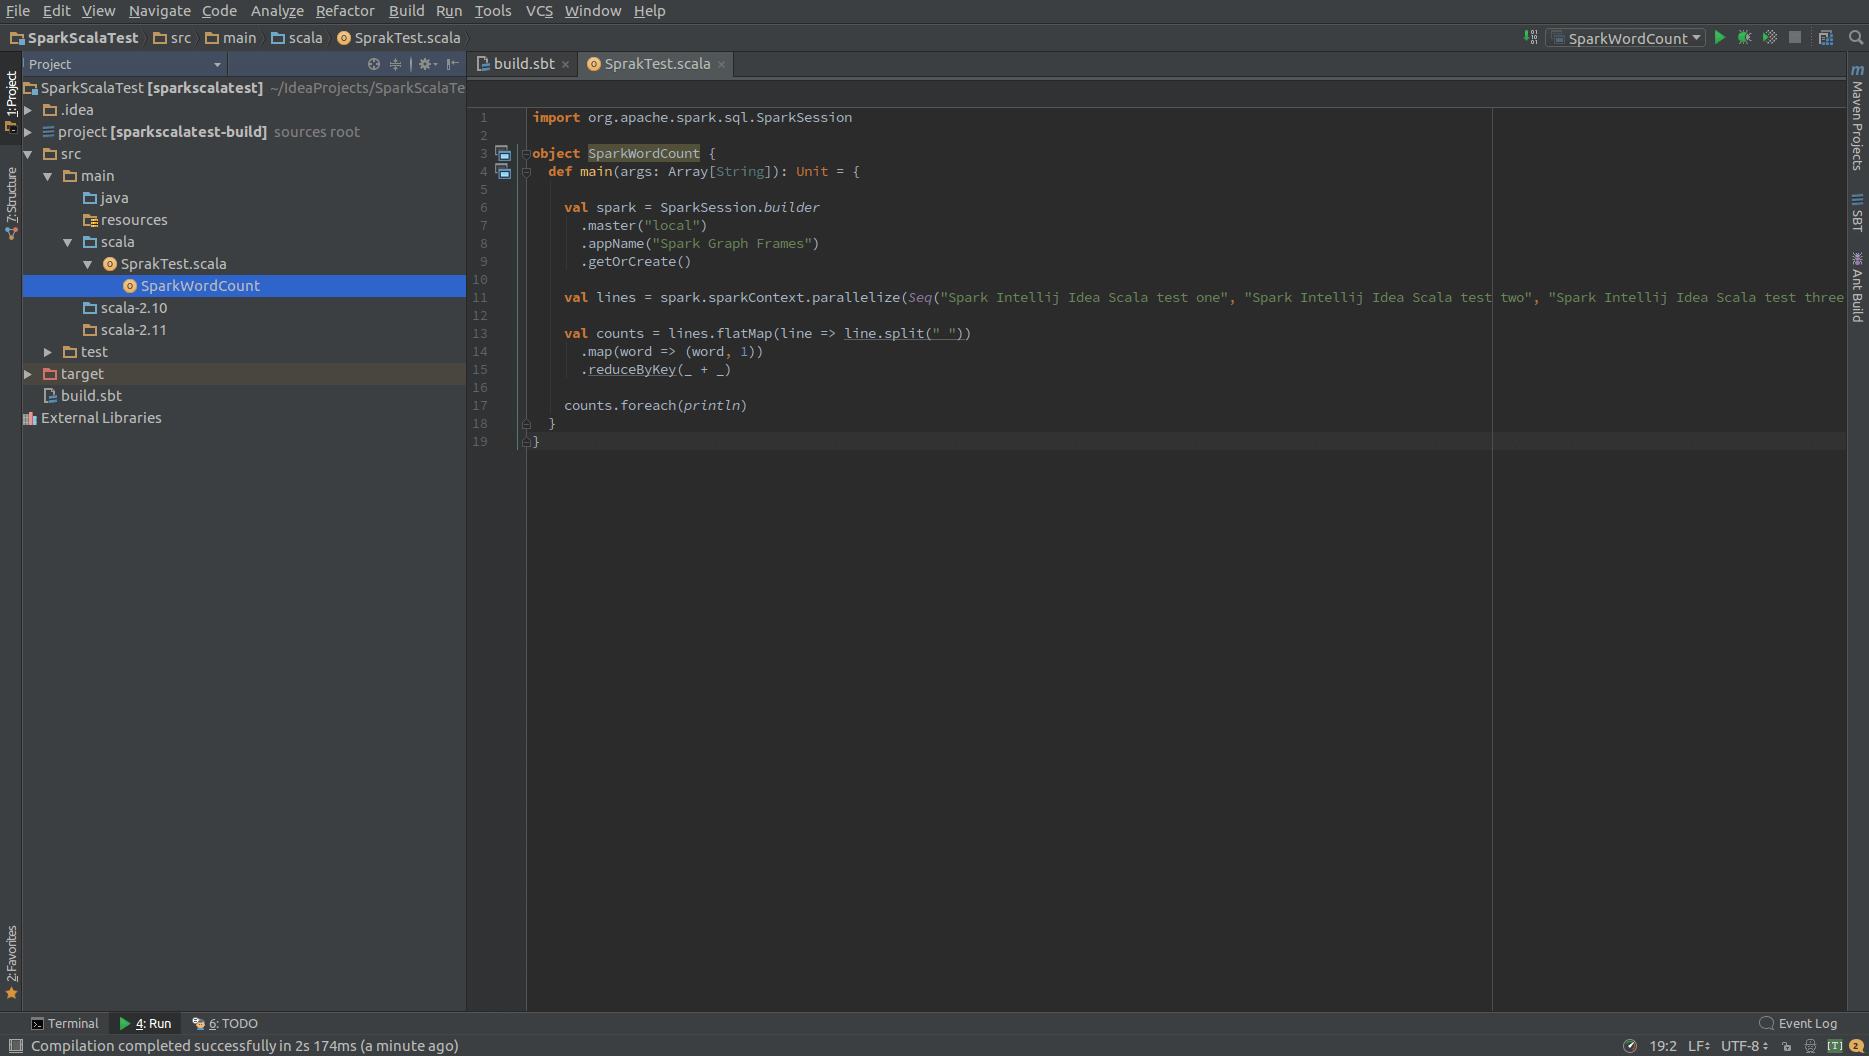 How to integrate Apache Spark, Intellij Idea and Scala